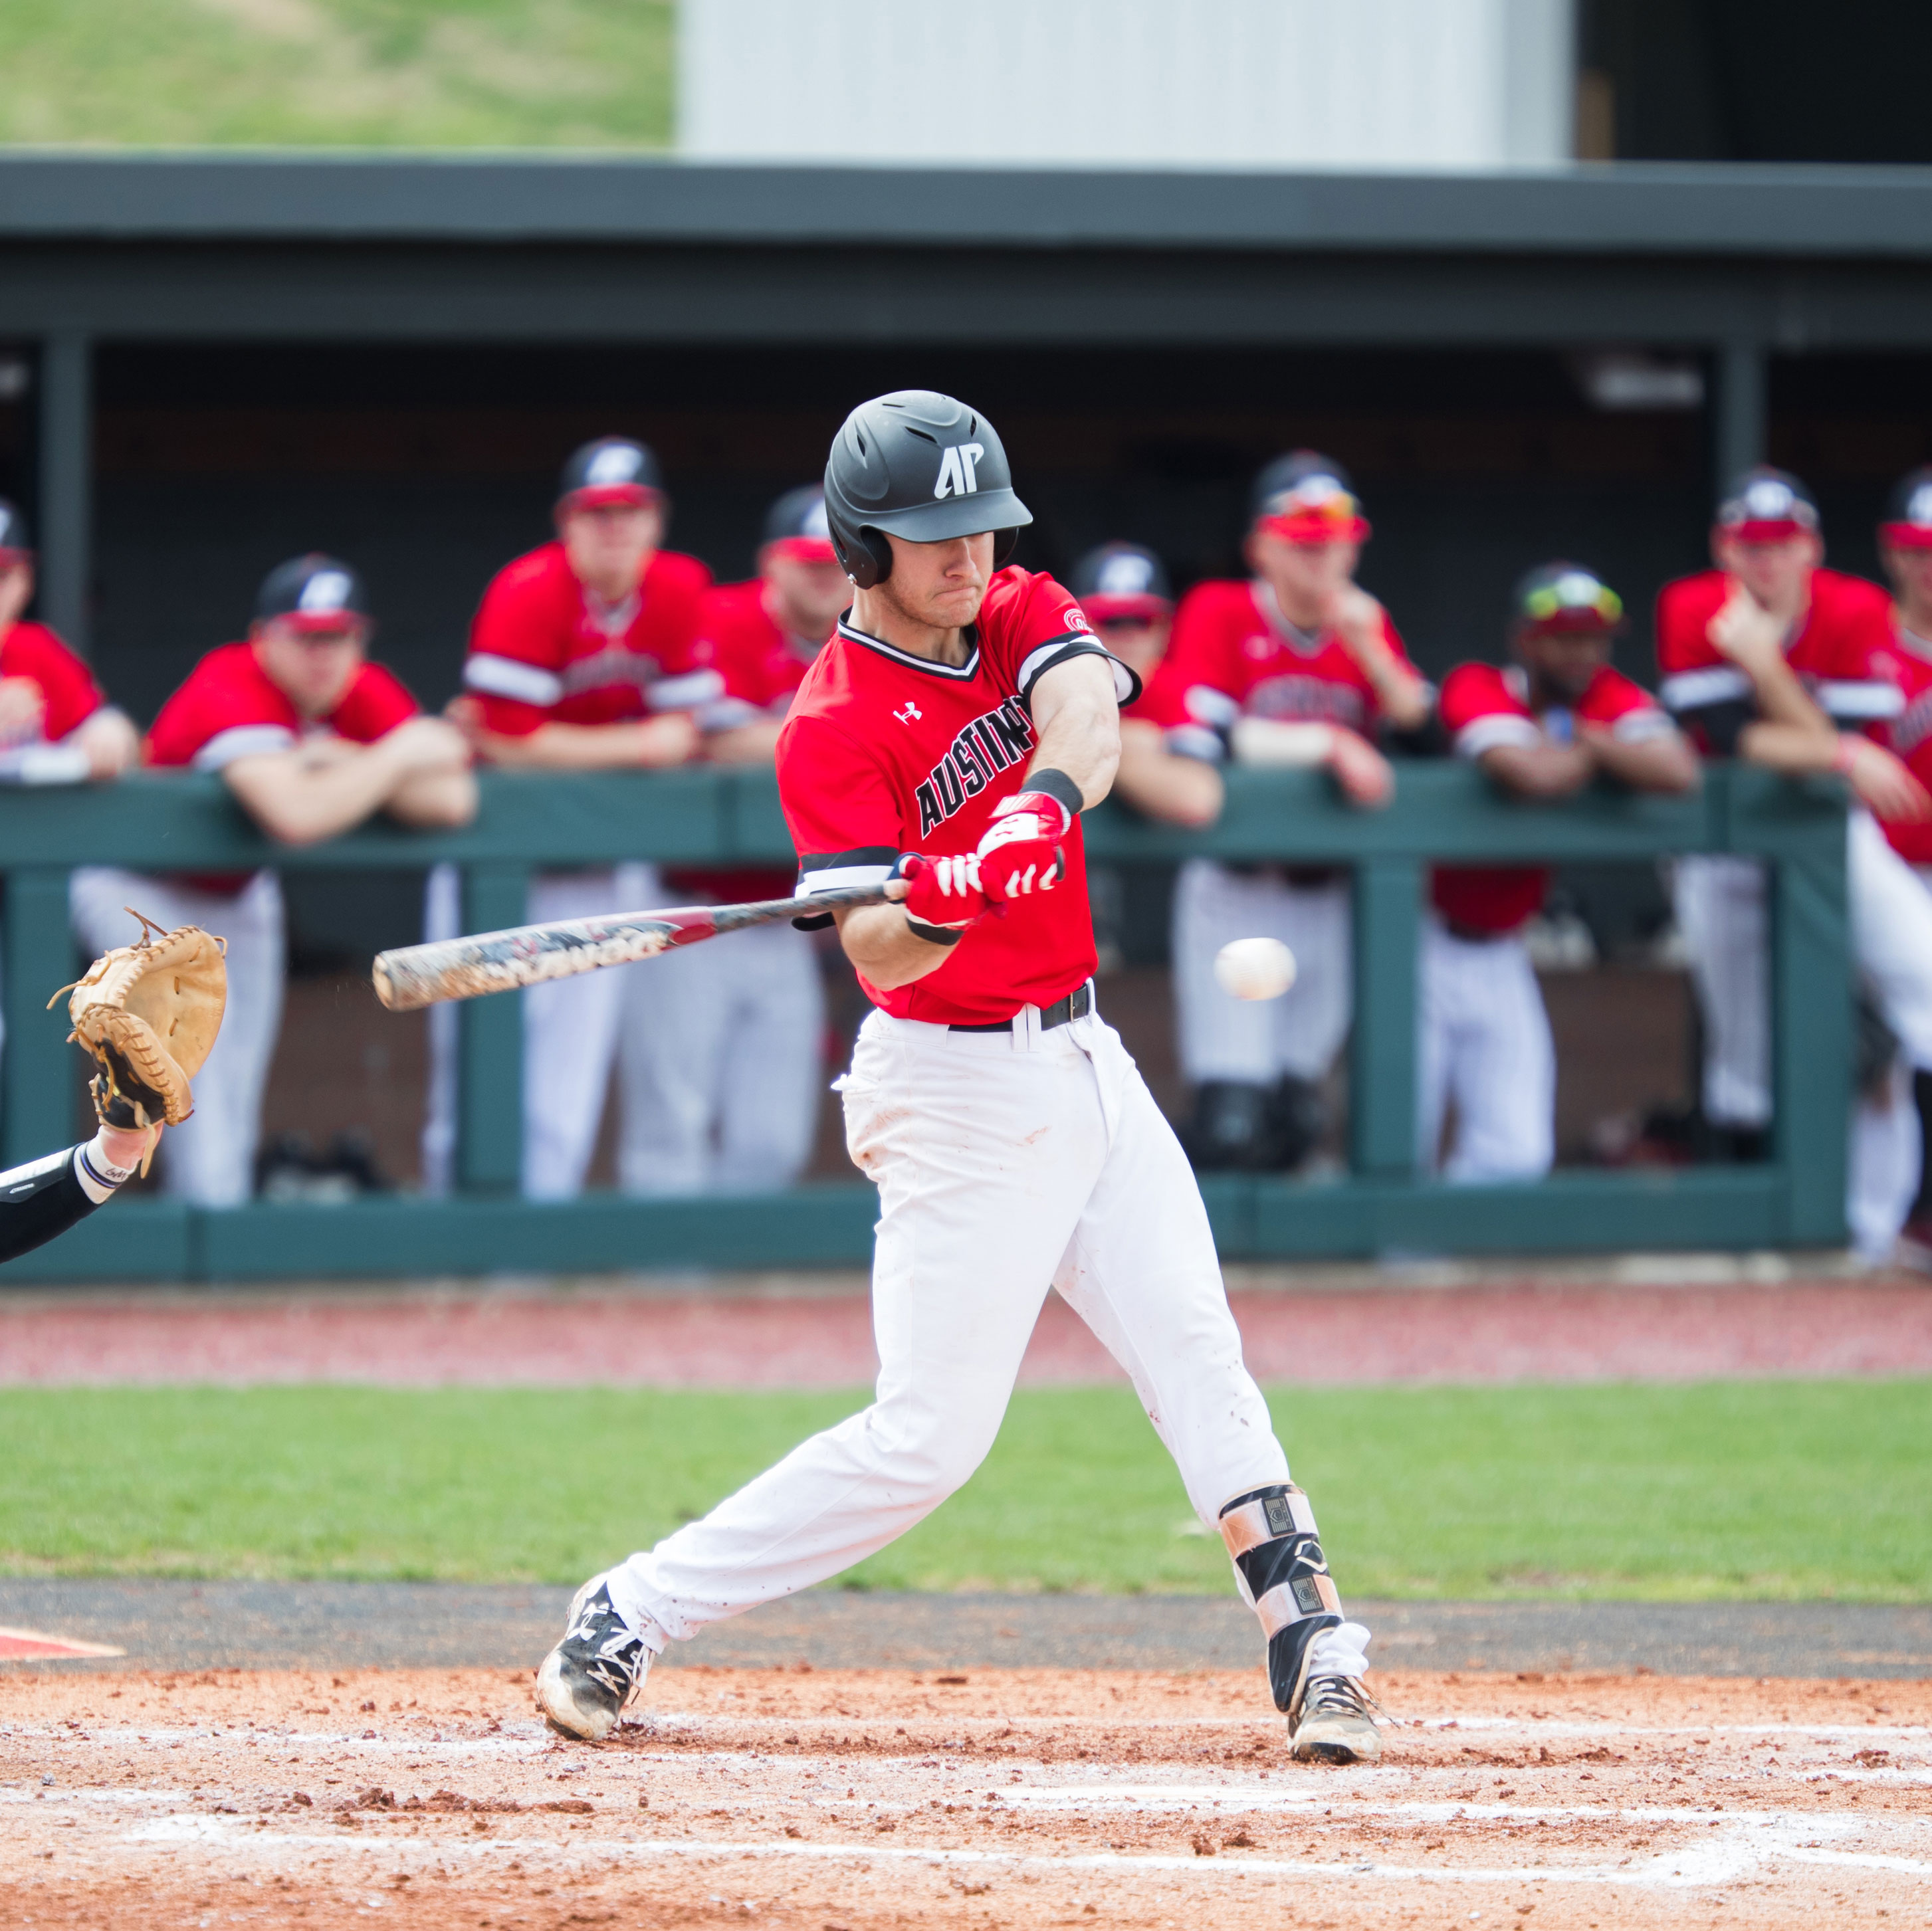 APSU baseball player swinging a bat